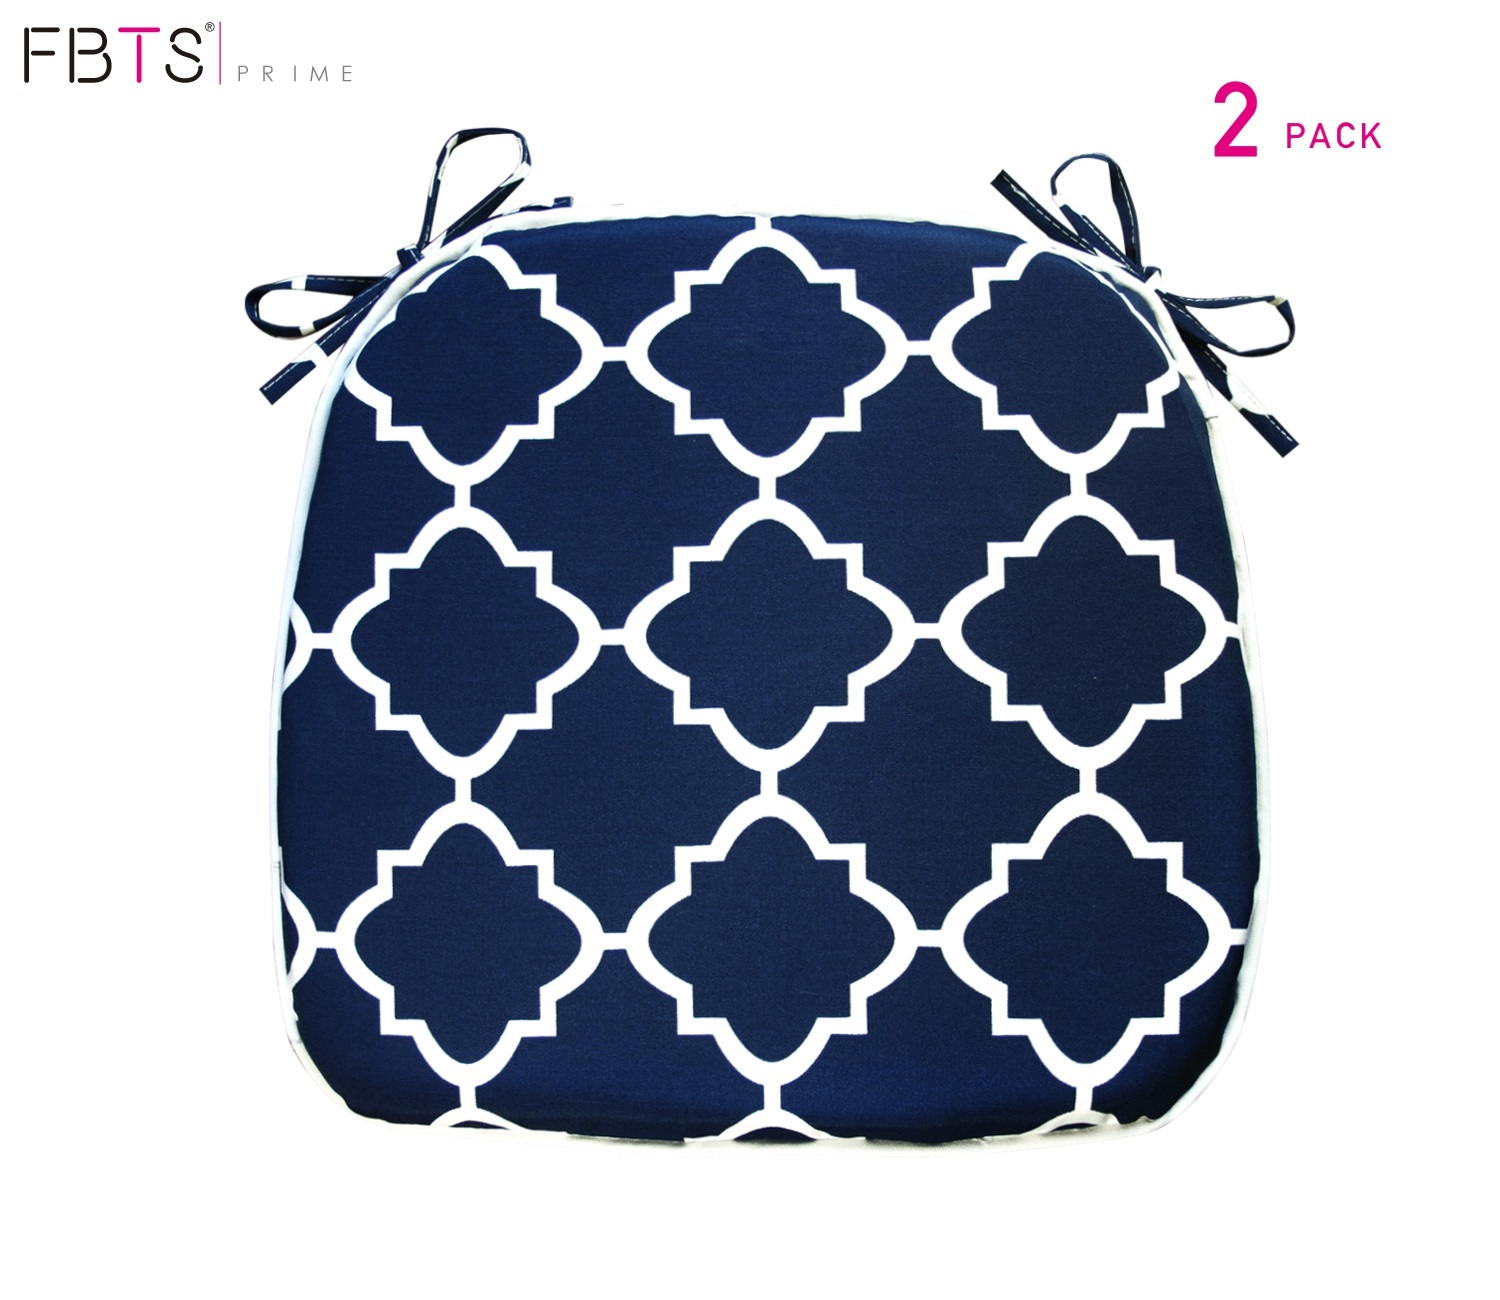 fbts prime outdoor chair cushions set of 2 16x17 inches patio seat cushions navy square chair pads for outdoor patio furniture garden home office